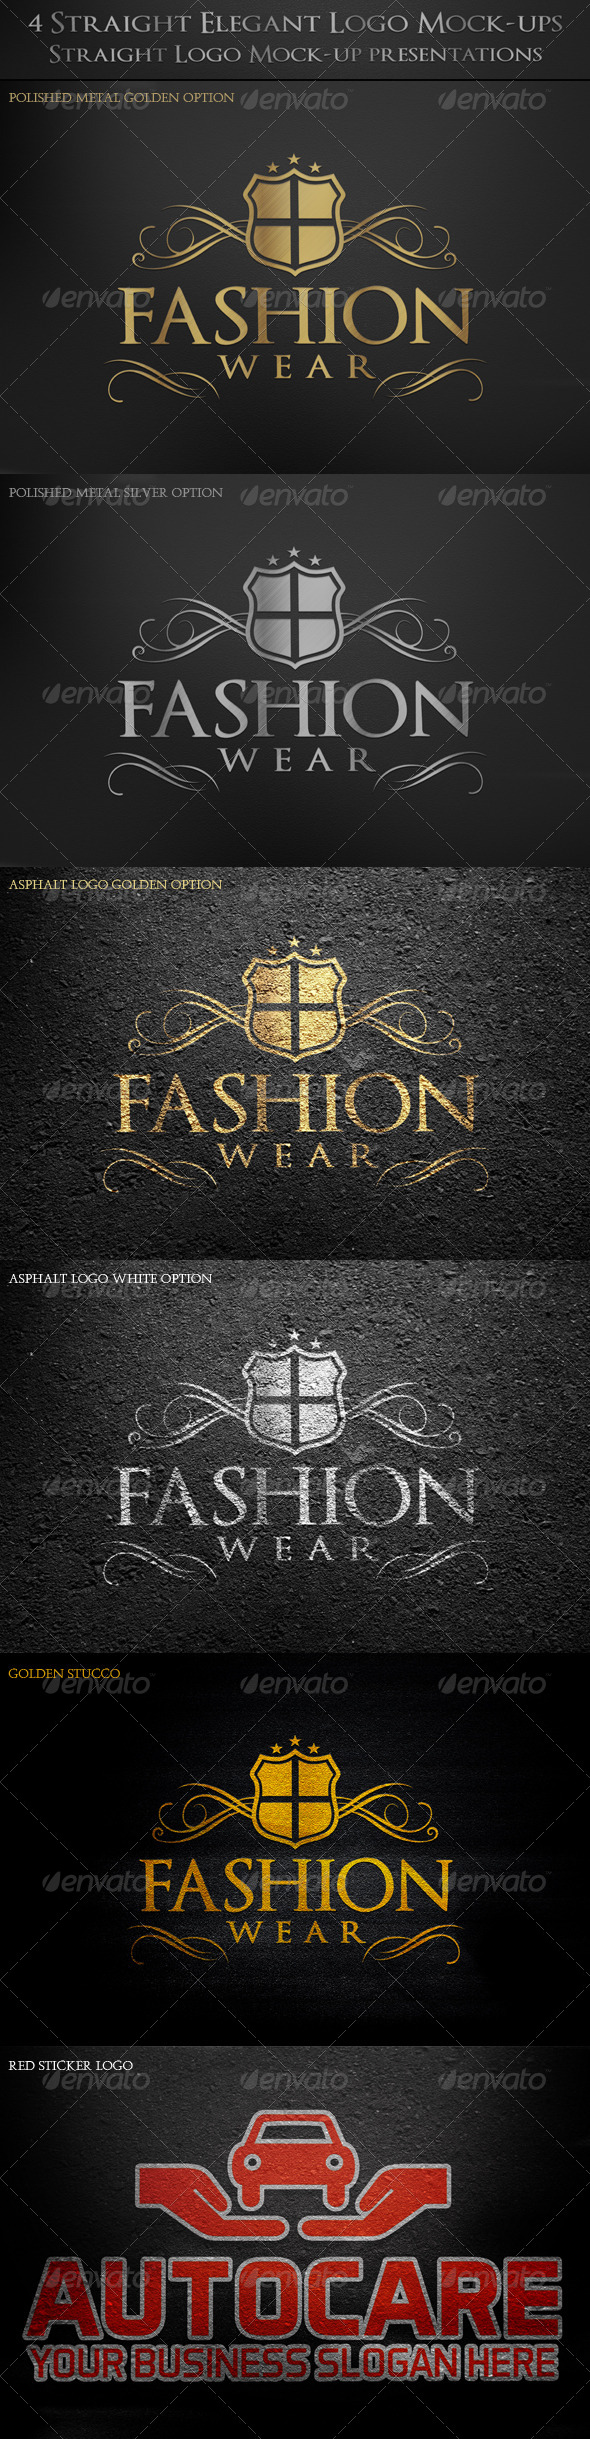 GraphicRiver 4 Straight Elegant Logo Mock-ups 6475138